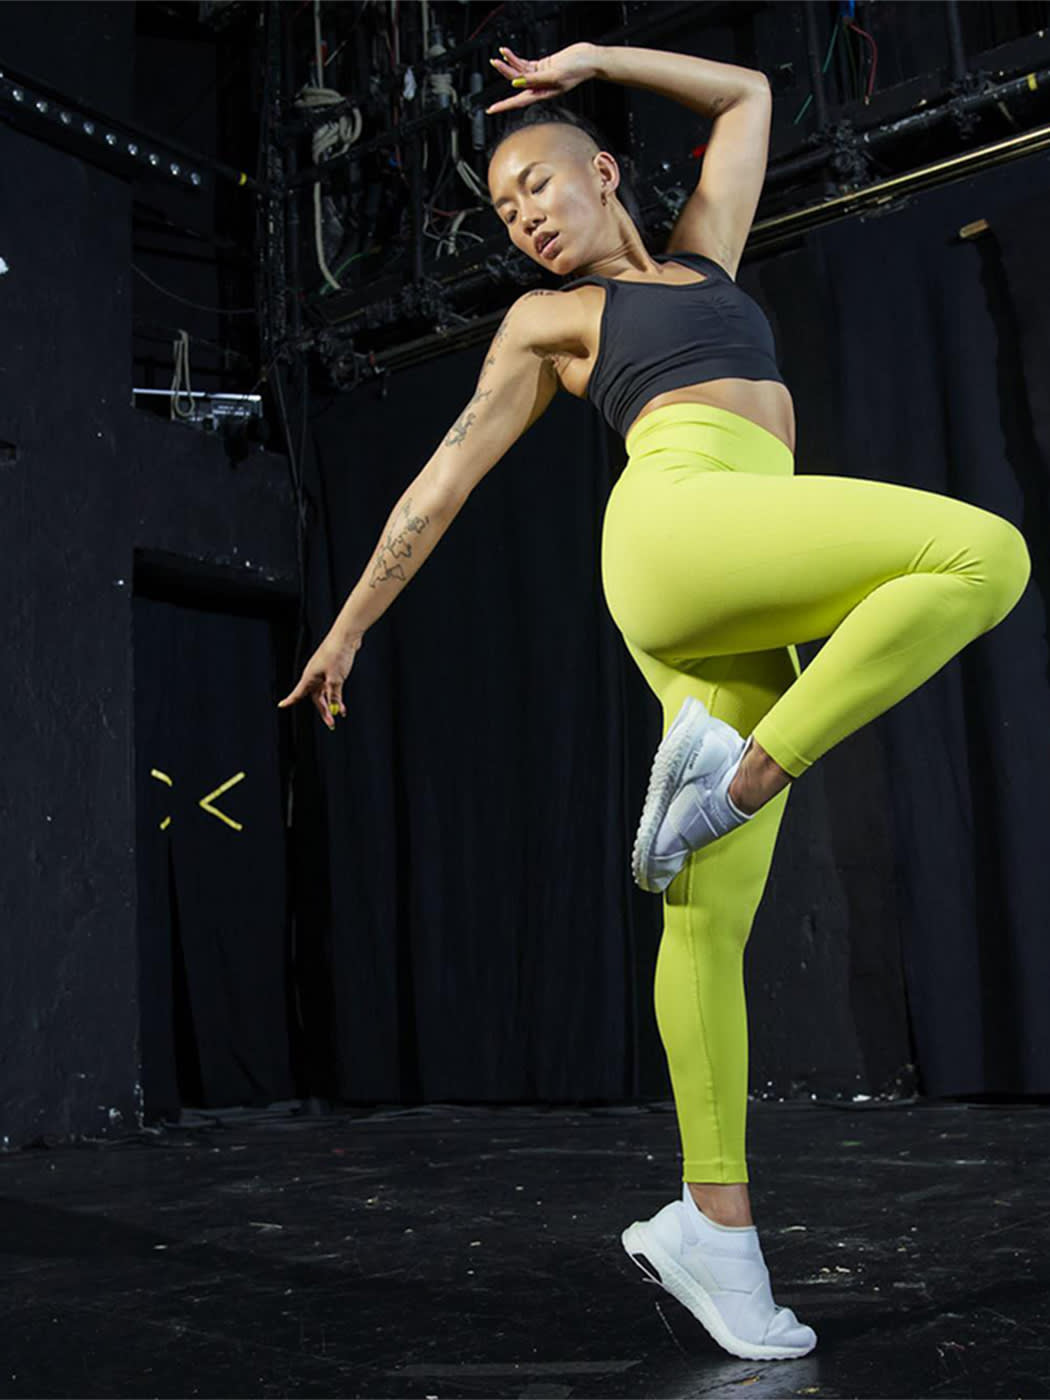 Image showing a woman in bright yellow leggings from Adidas Formotion making a jump with one knee raised high